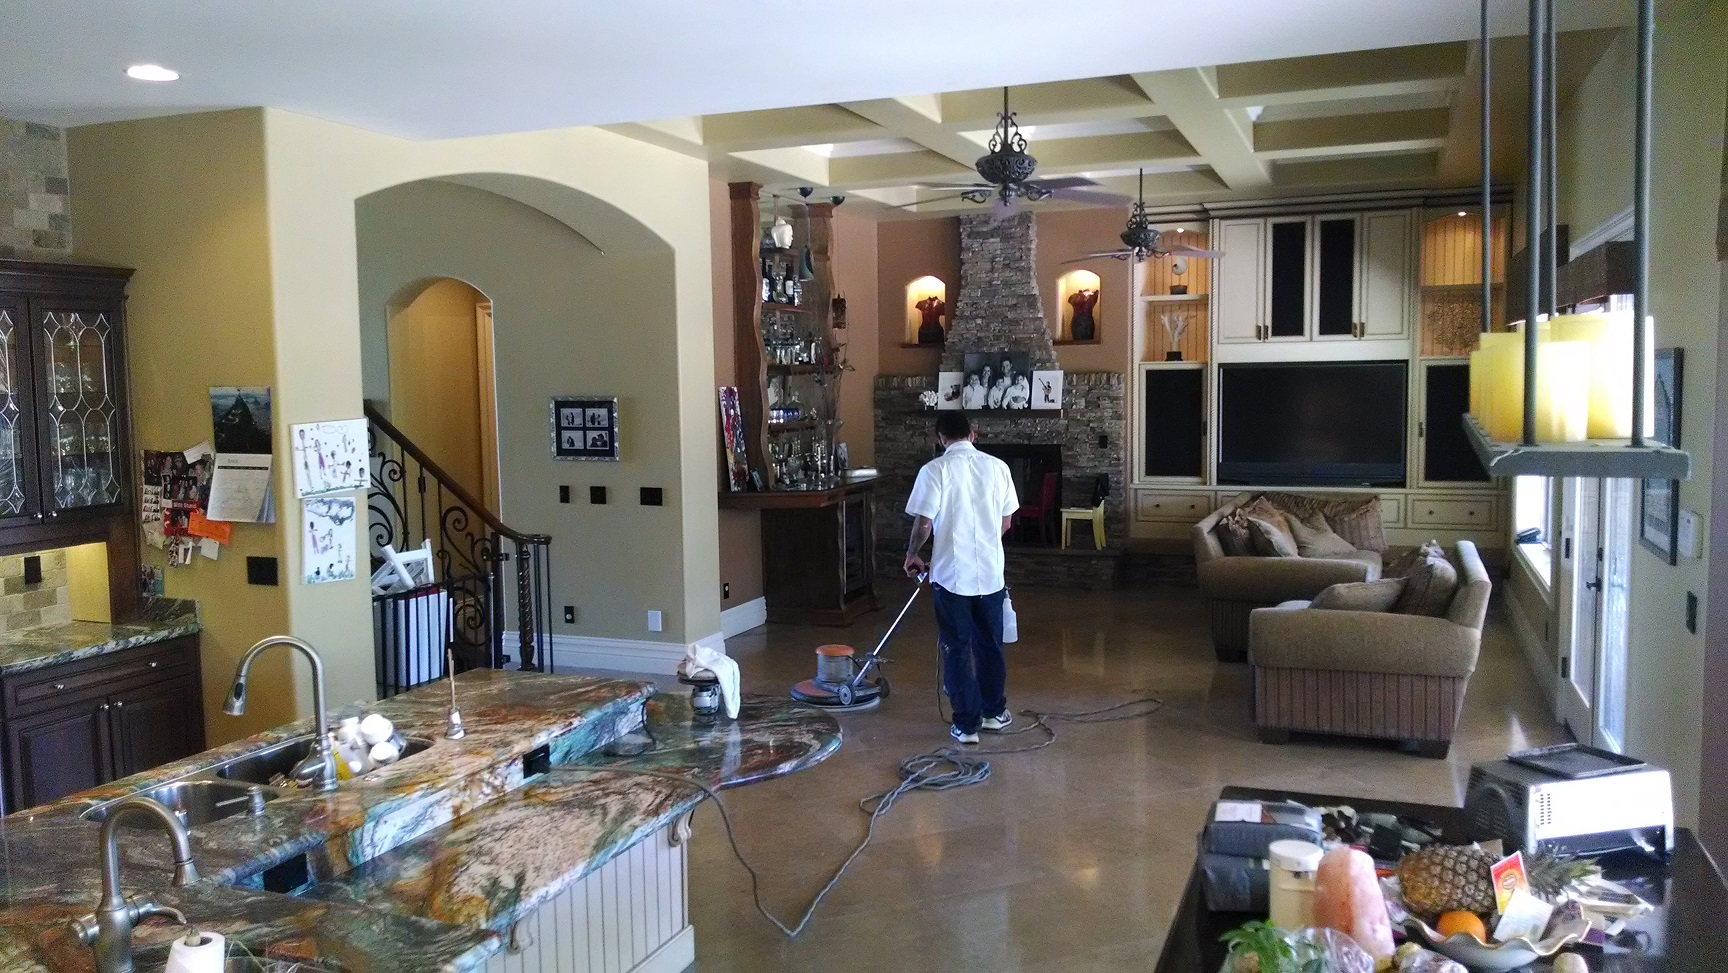 Bathroom Floor Restoration Las Vegas